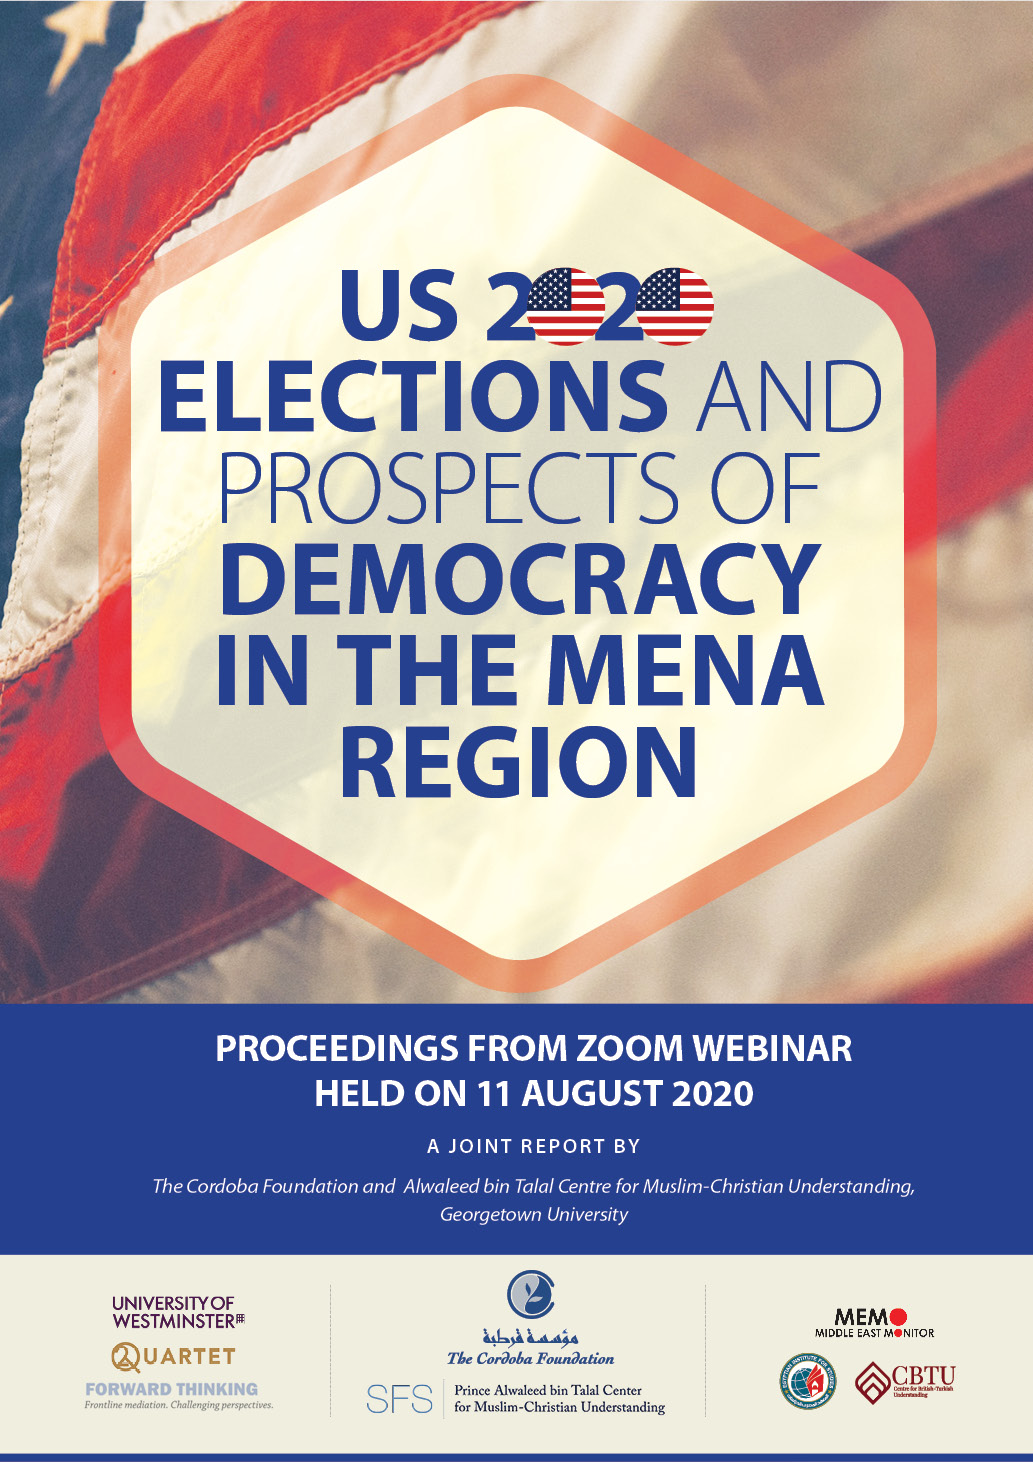 Webinar Report: US 2020 Elections and Prospects of Democracy in the MENA Region